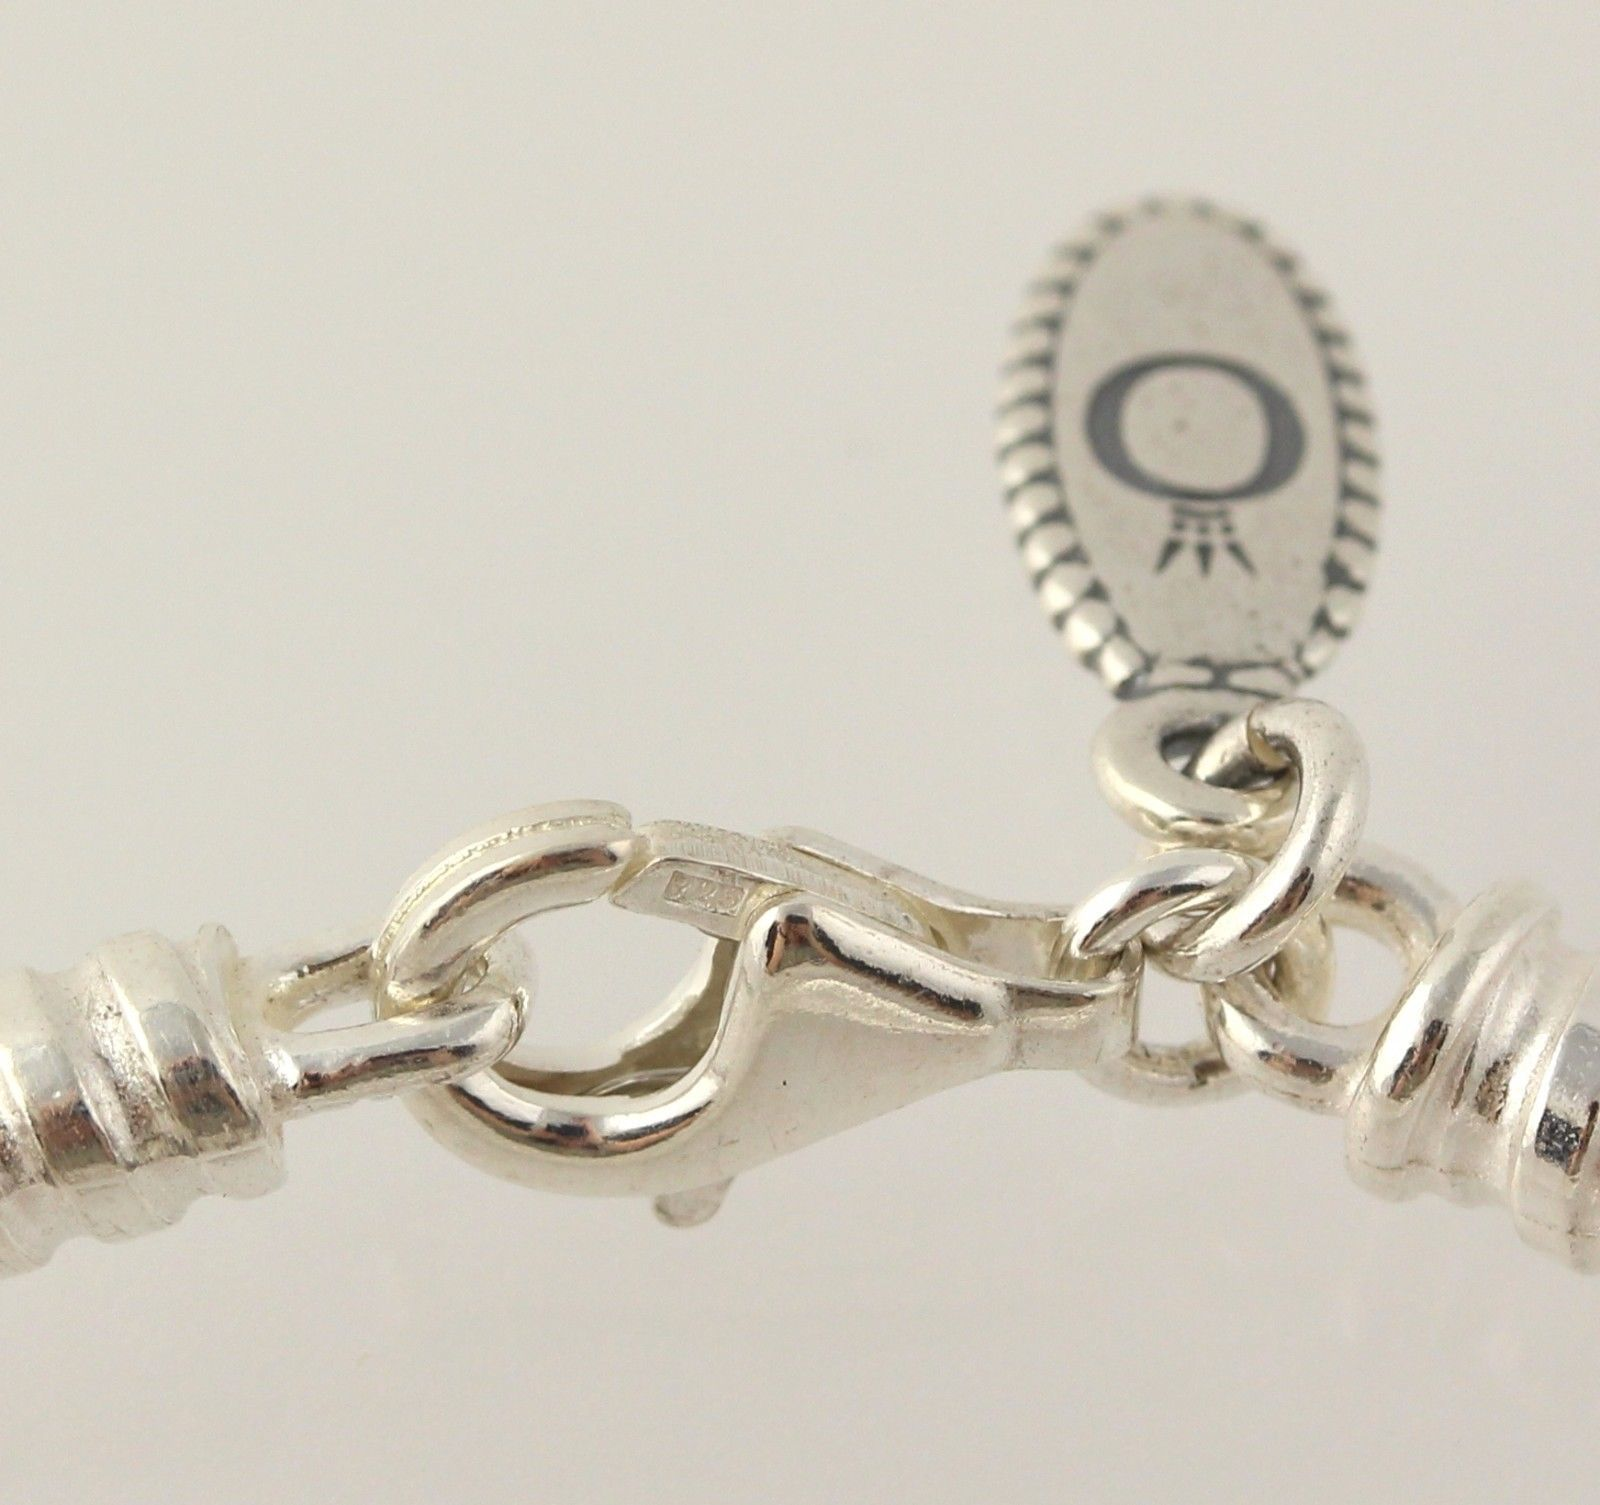 initial alphabet bracelet side charm products silver pandora sterling bracelets m or letter for necklaces